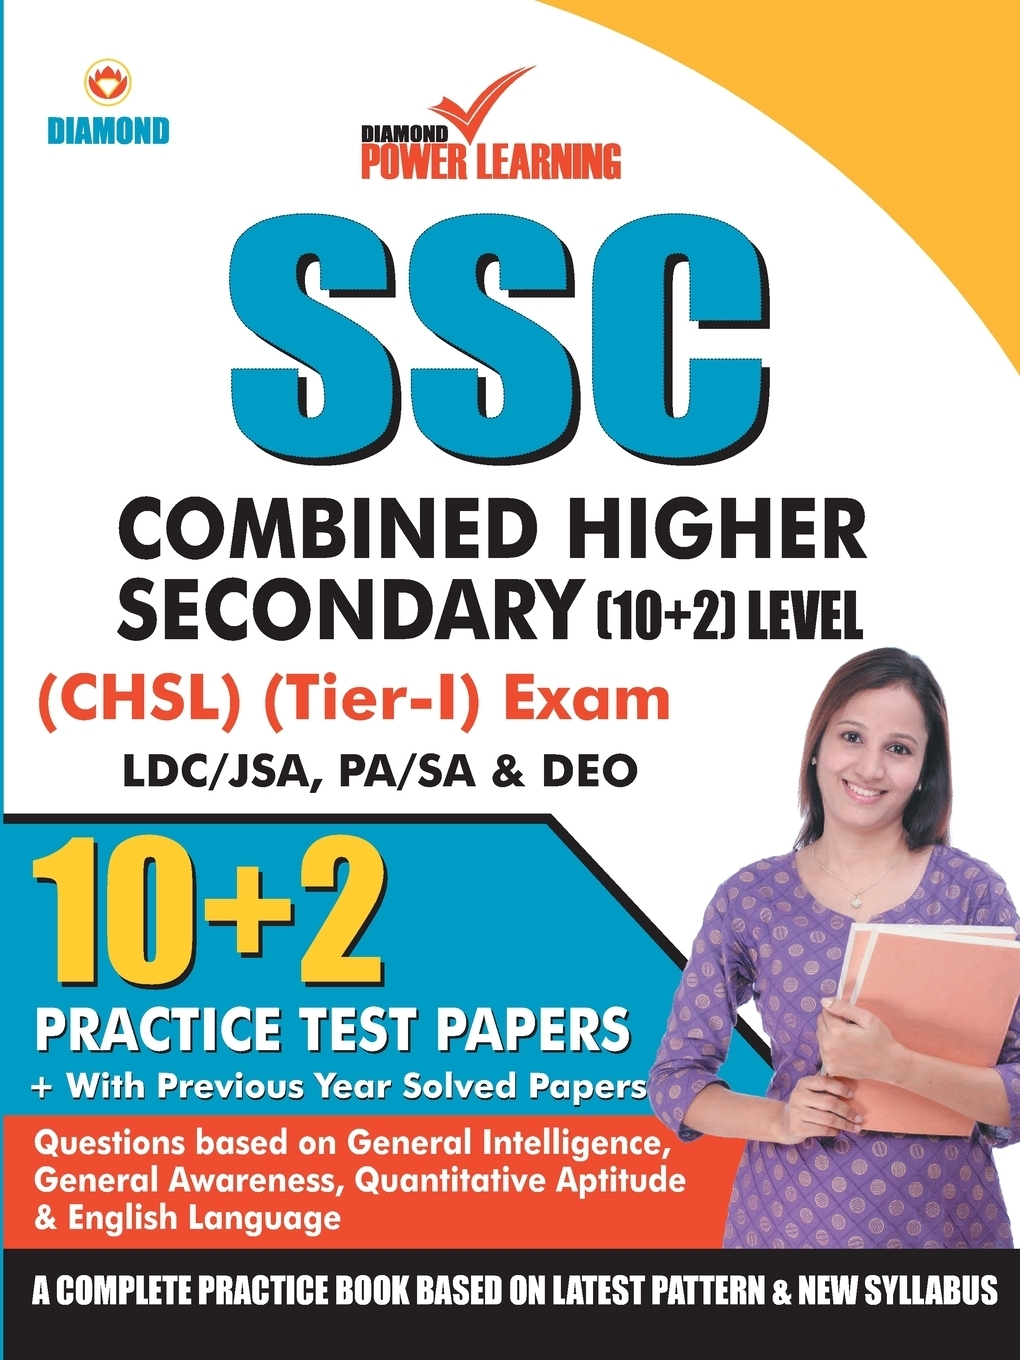 Diamond Power Learning Team. Staff Selection Commission (SSC) - Combined Higher Secondary Level (CHSL) Recruitment 2019, Preliminary Examination (Tier - I) based on CBE in English 10 PTP, with previous year solved papers, General Intelligence, General Awareness, Quantitative ...